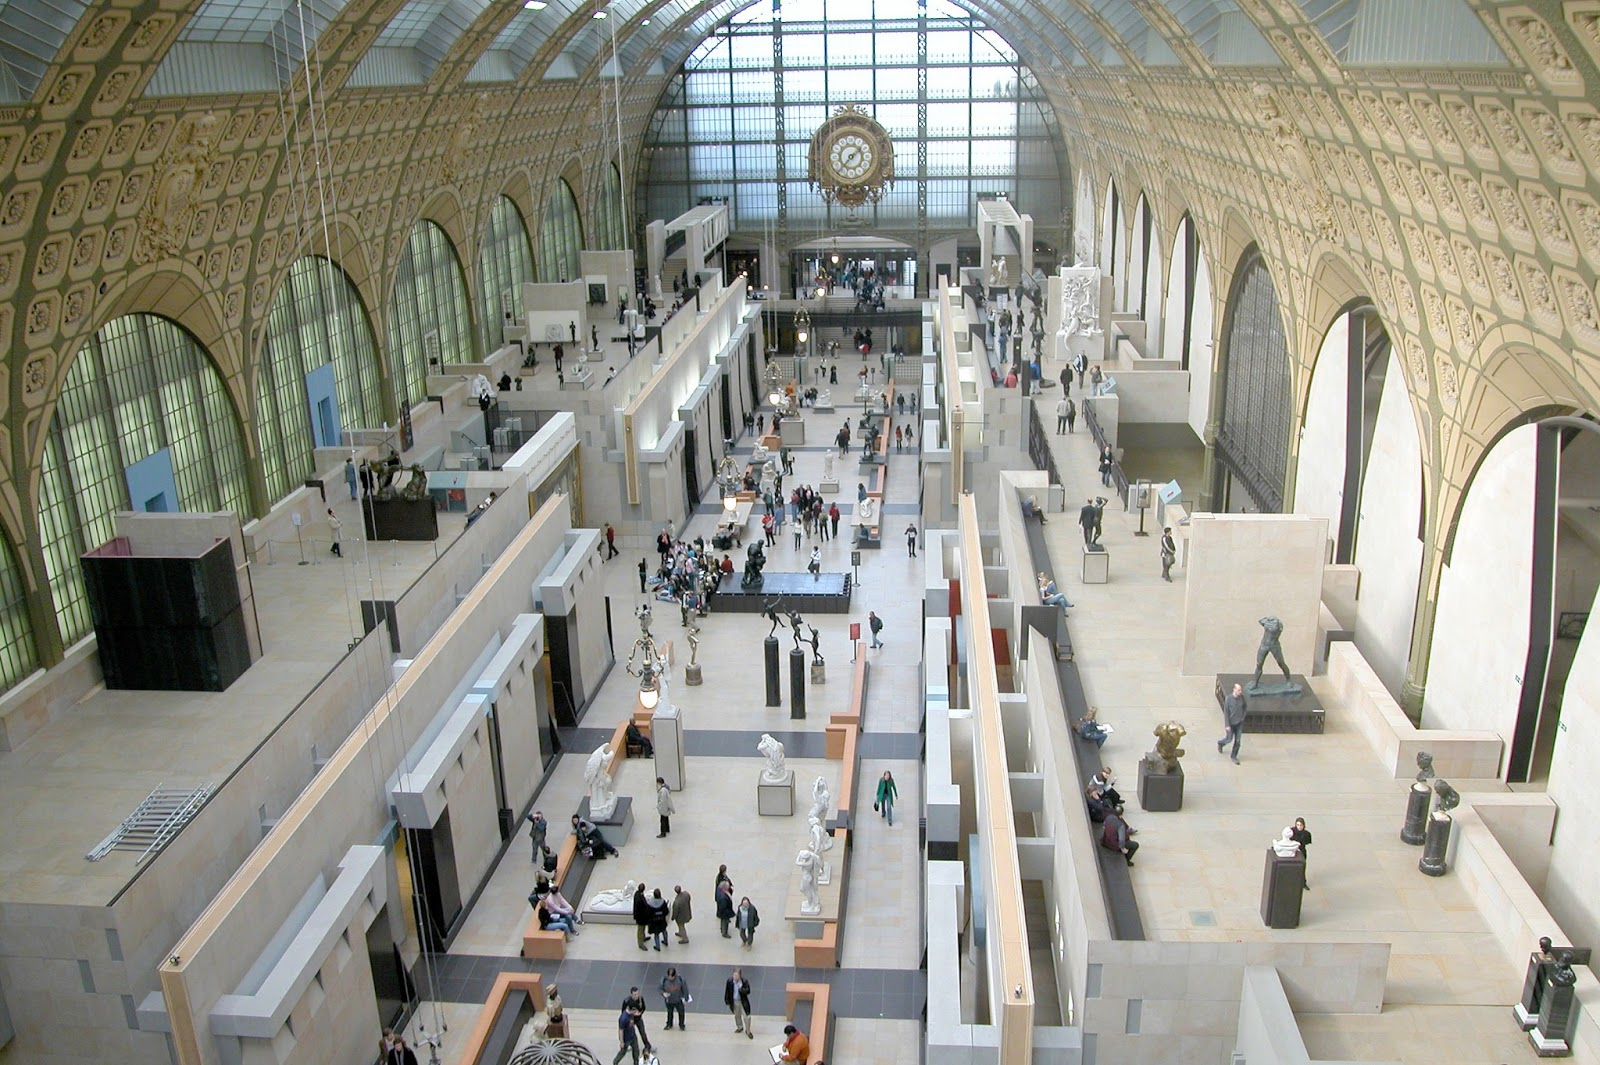 The Musée d\'Orsay Amazing Museum | Paris, France | World Travel Guides